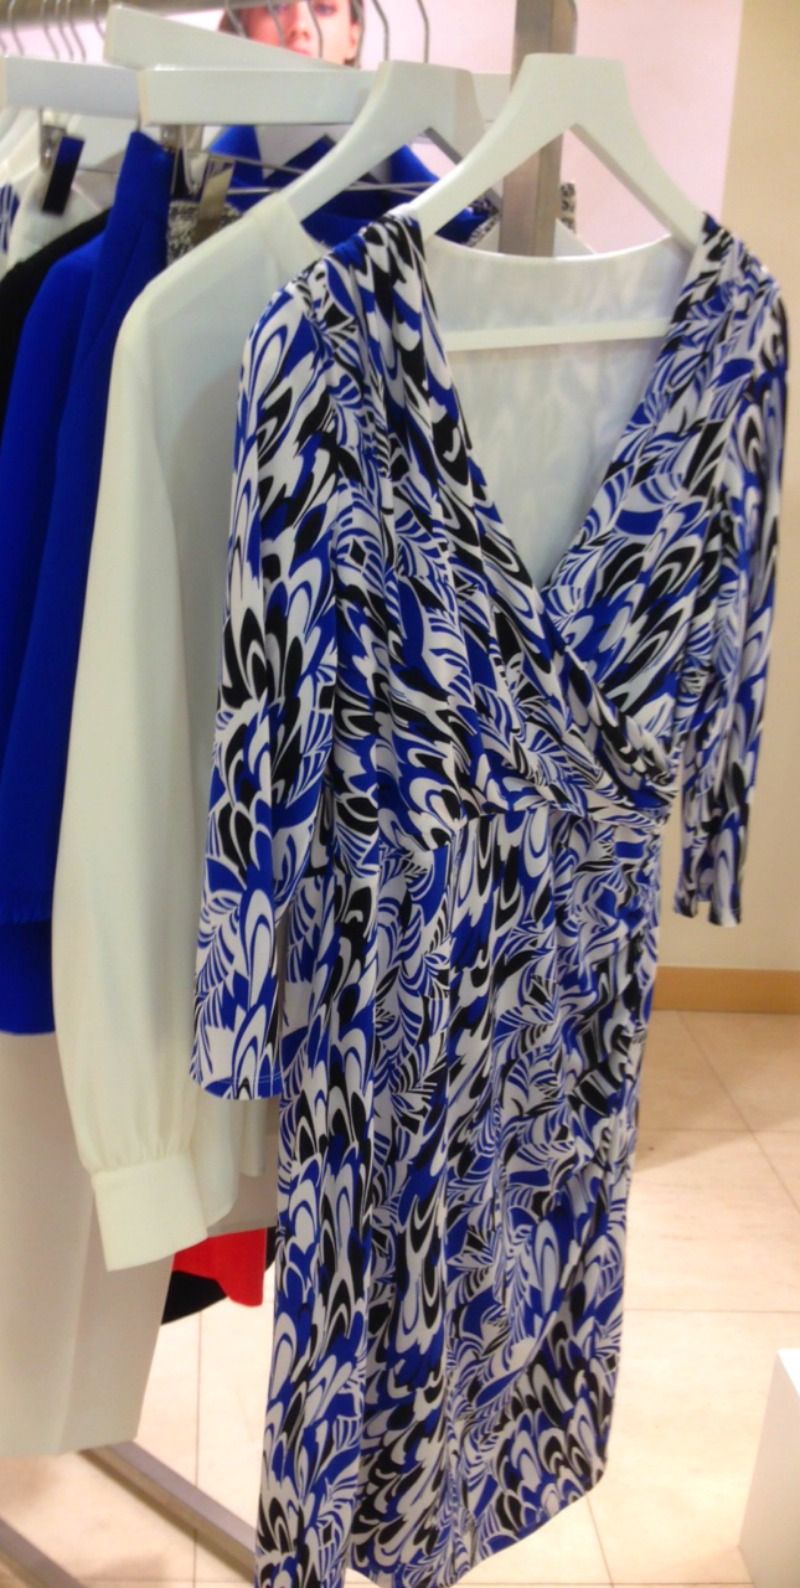 Jacques Vert Group SS16 preview